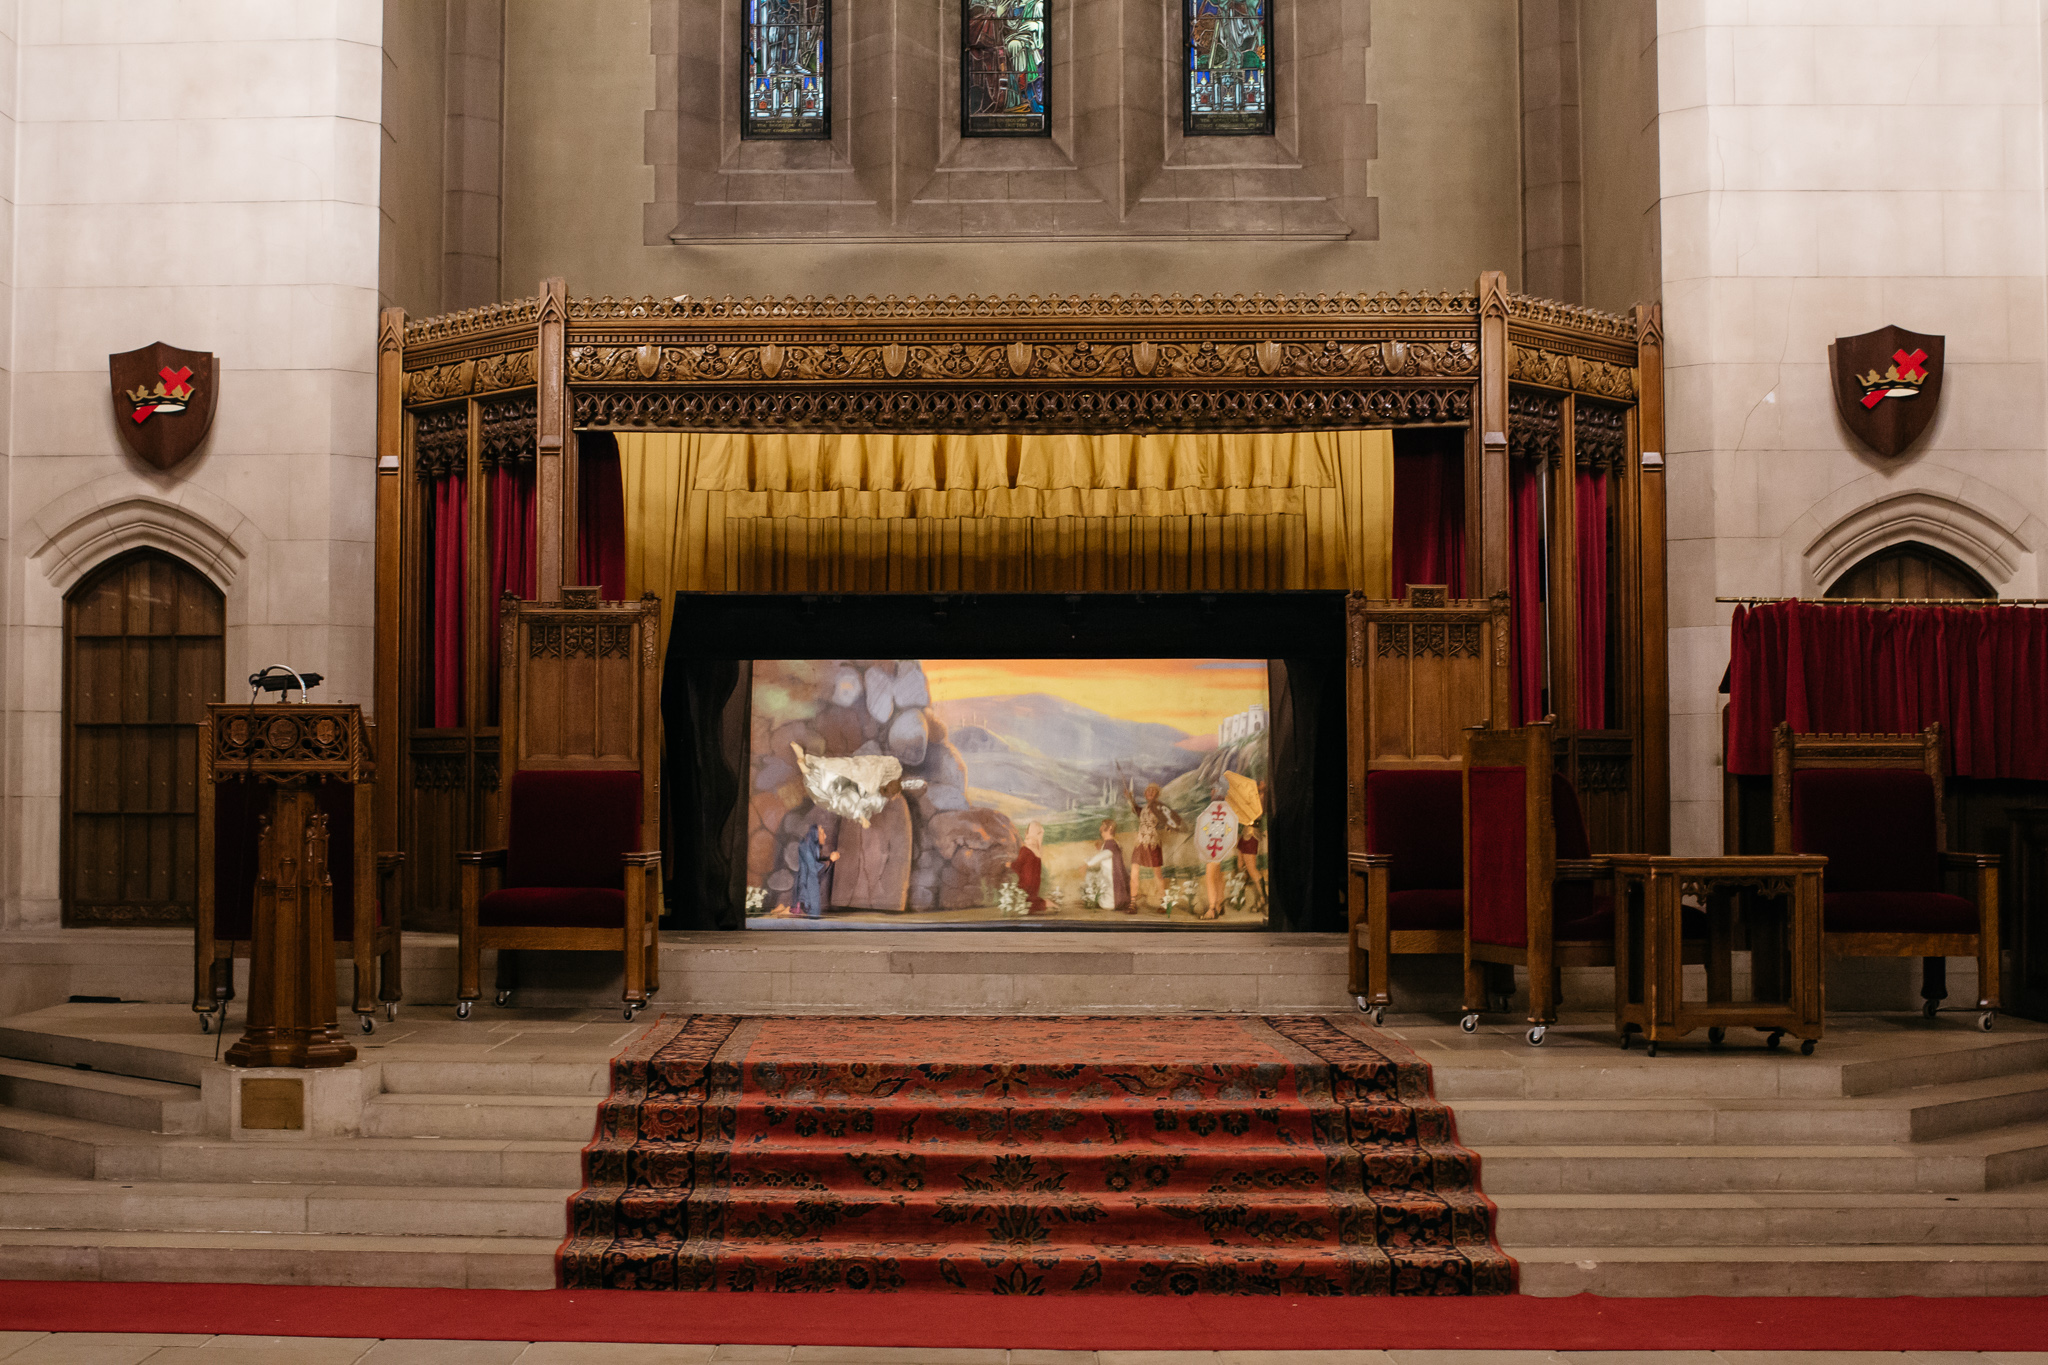 Photos: Behind the scenes at the Masonic Temple - Curbed Detroit